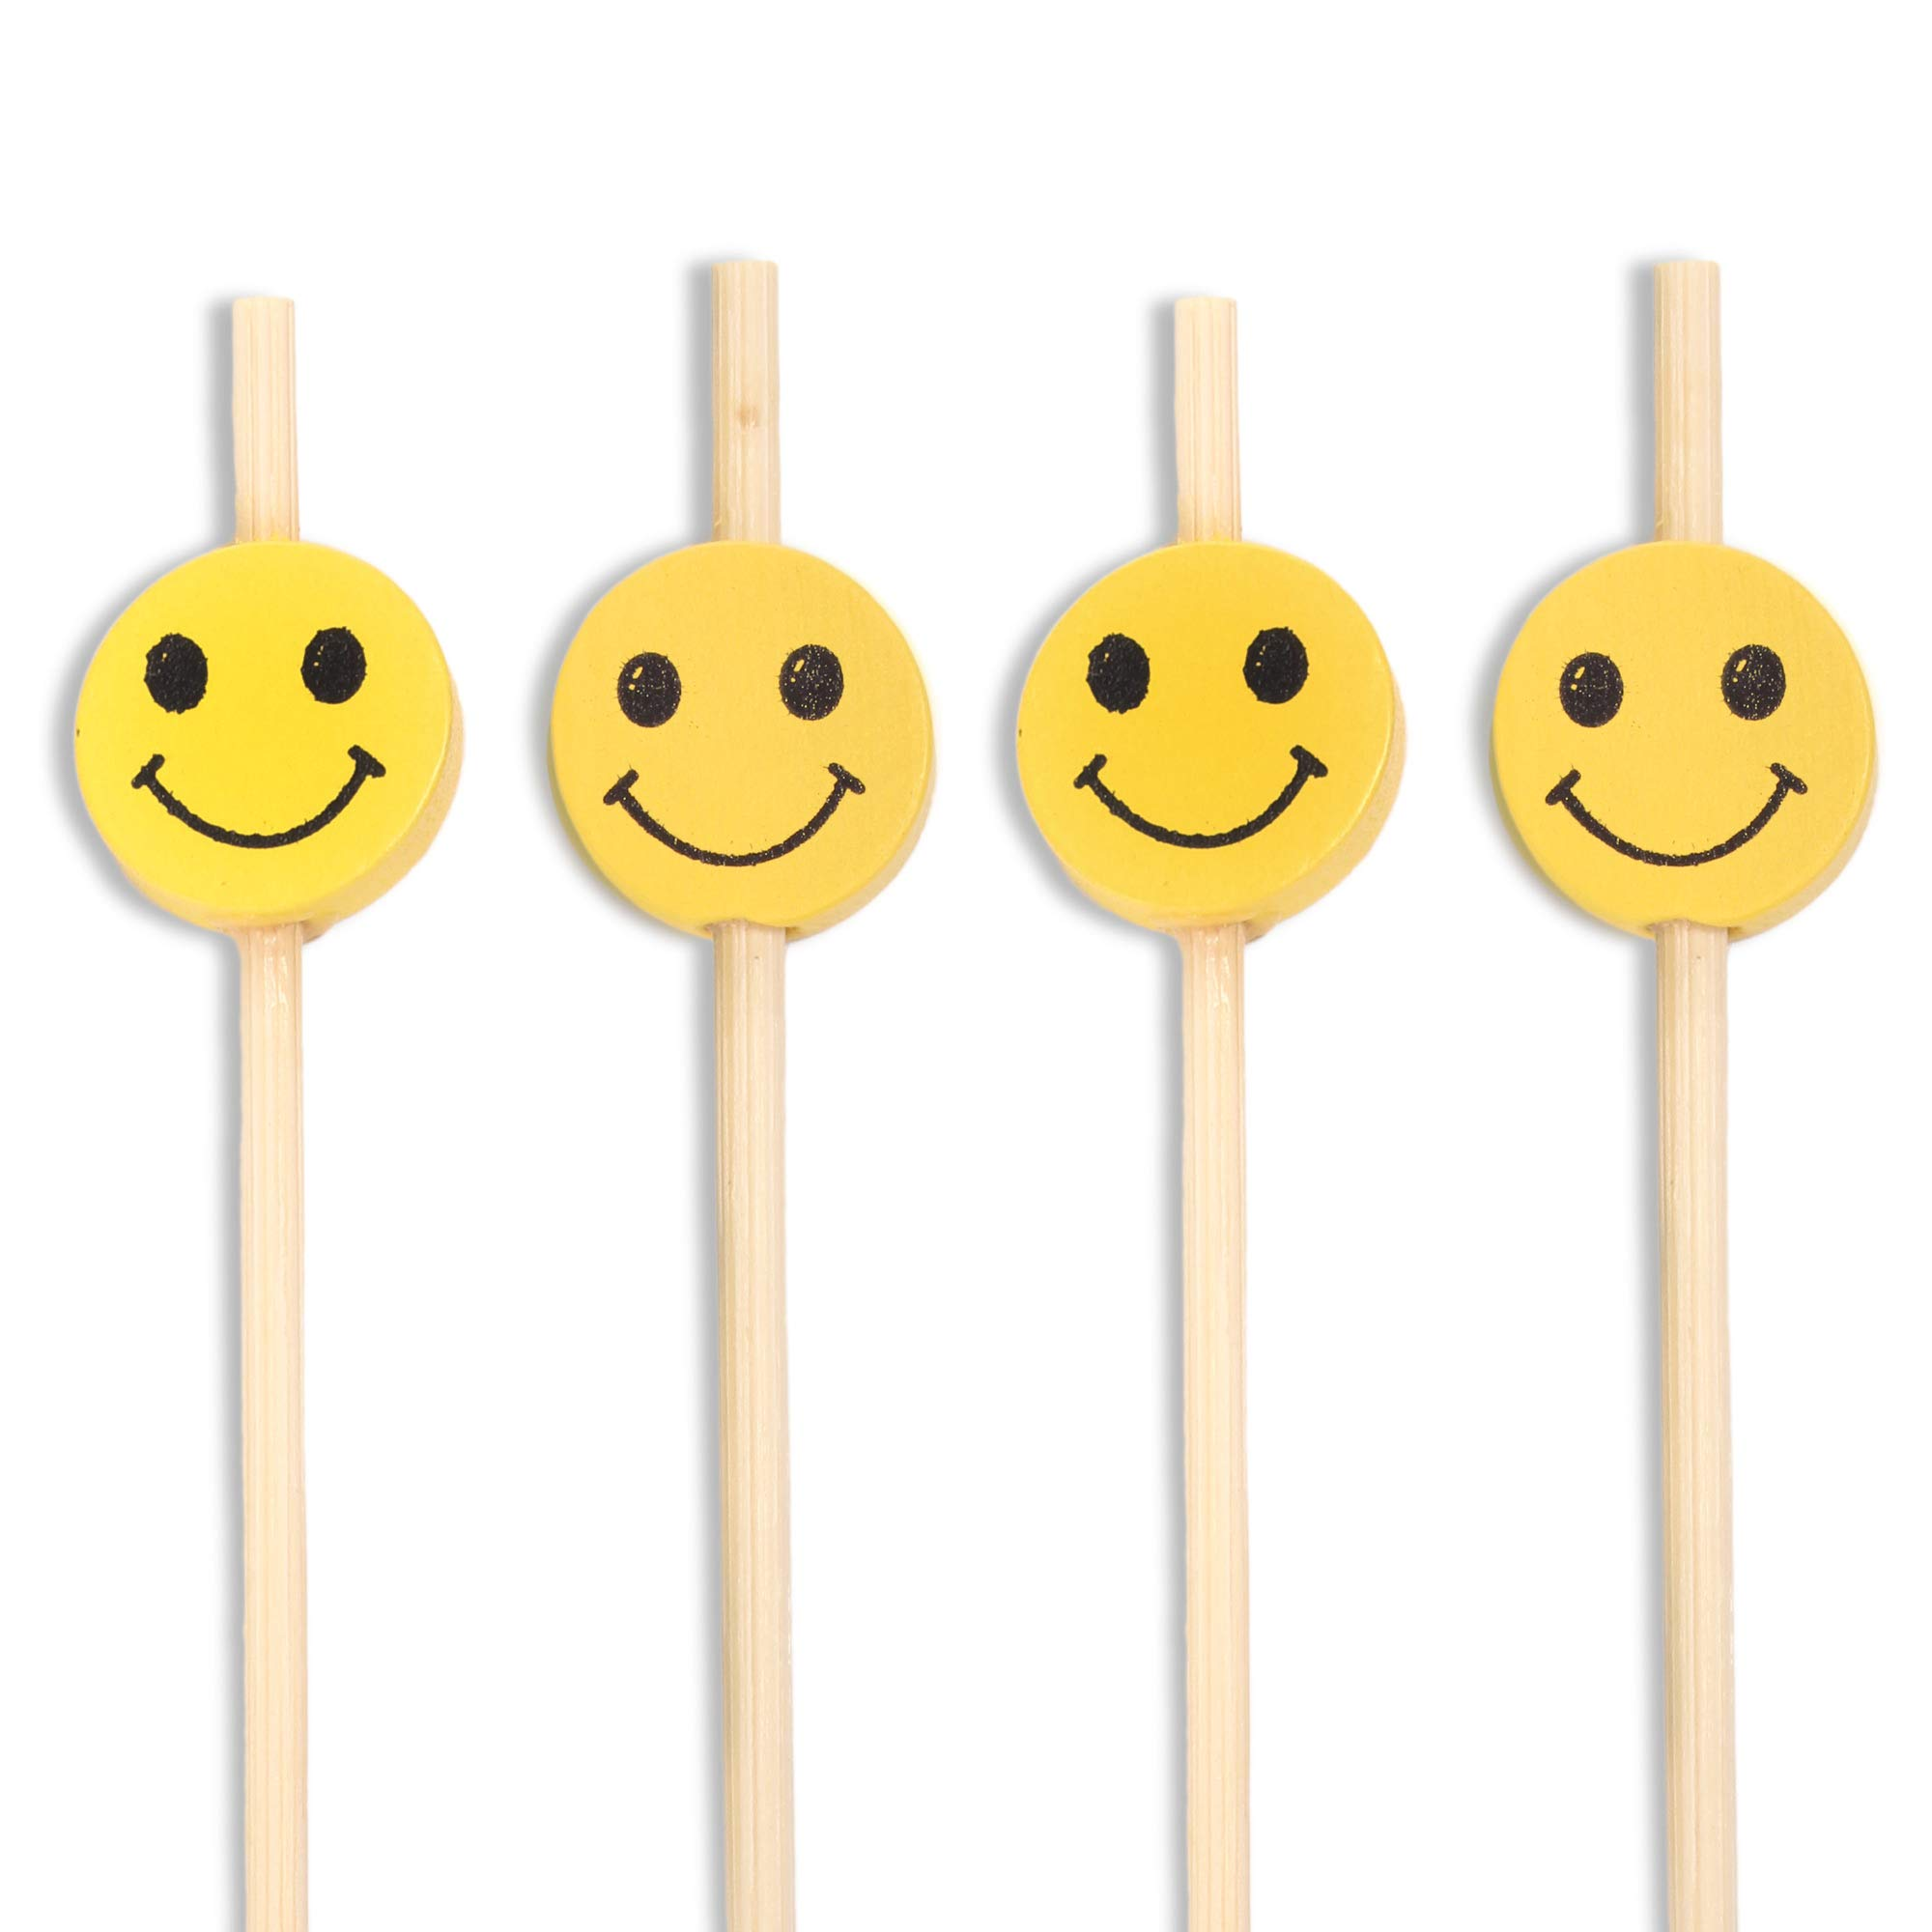 BambooMN 4'' Decorative Premium Bamboo Smiley Face Cocktail Sandwich Fruit Skewer Pick, 1,000 Pieces